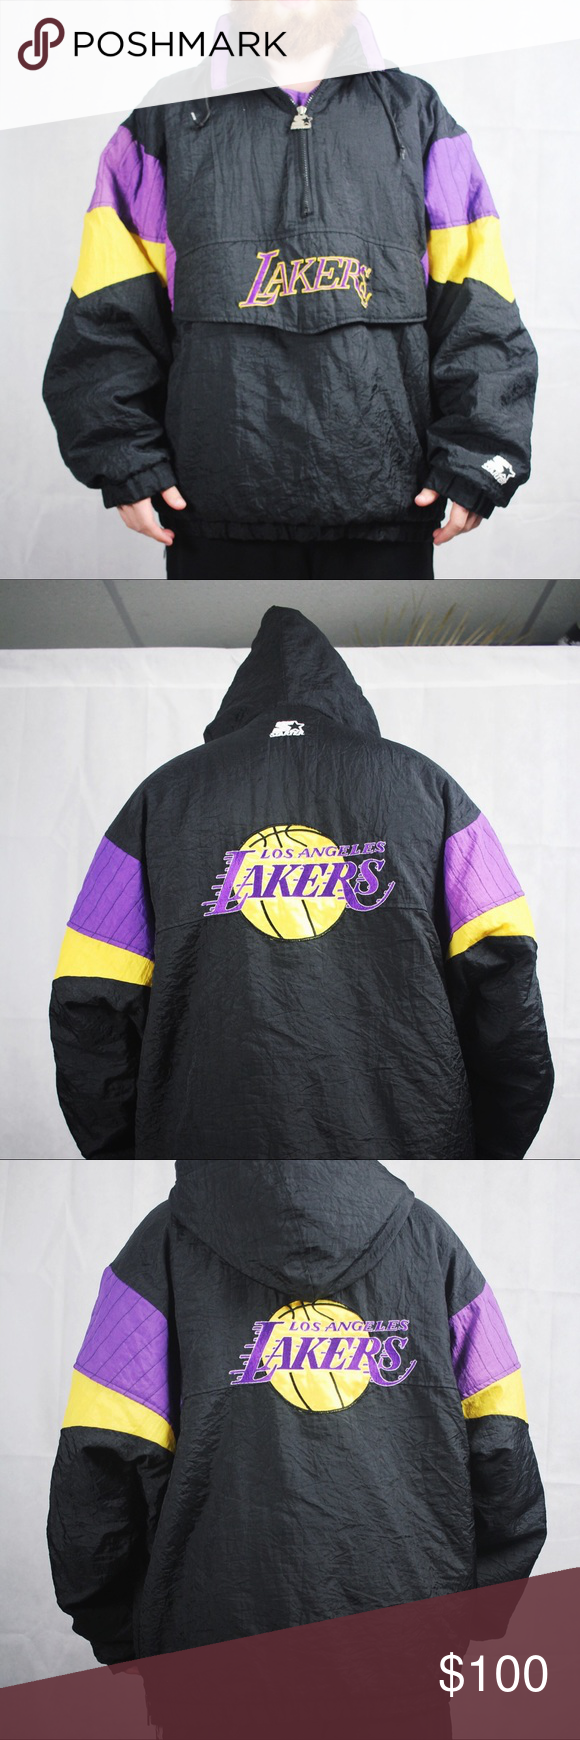 Vintage L.A. Lakers Starter Hooded Puffer Jacket *inspect all photos before purchase please!* Brand: Starter Decade: 00s Size: L Shown on size: M Smoke Free Home Measurements Upon Request Ships within 3 business days. Stay Rad ::) *not supreme* Supreme Jackets & Coats Puffers